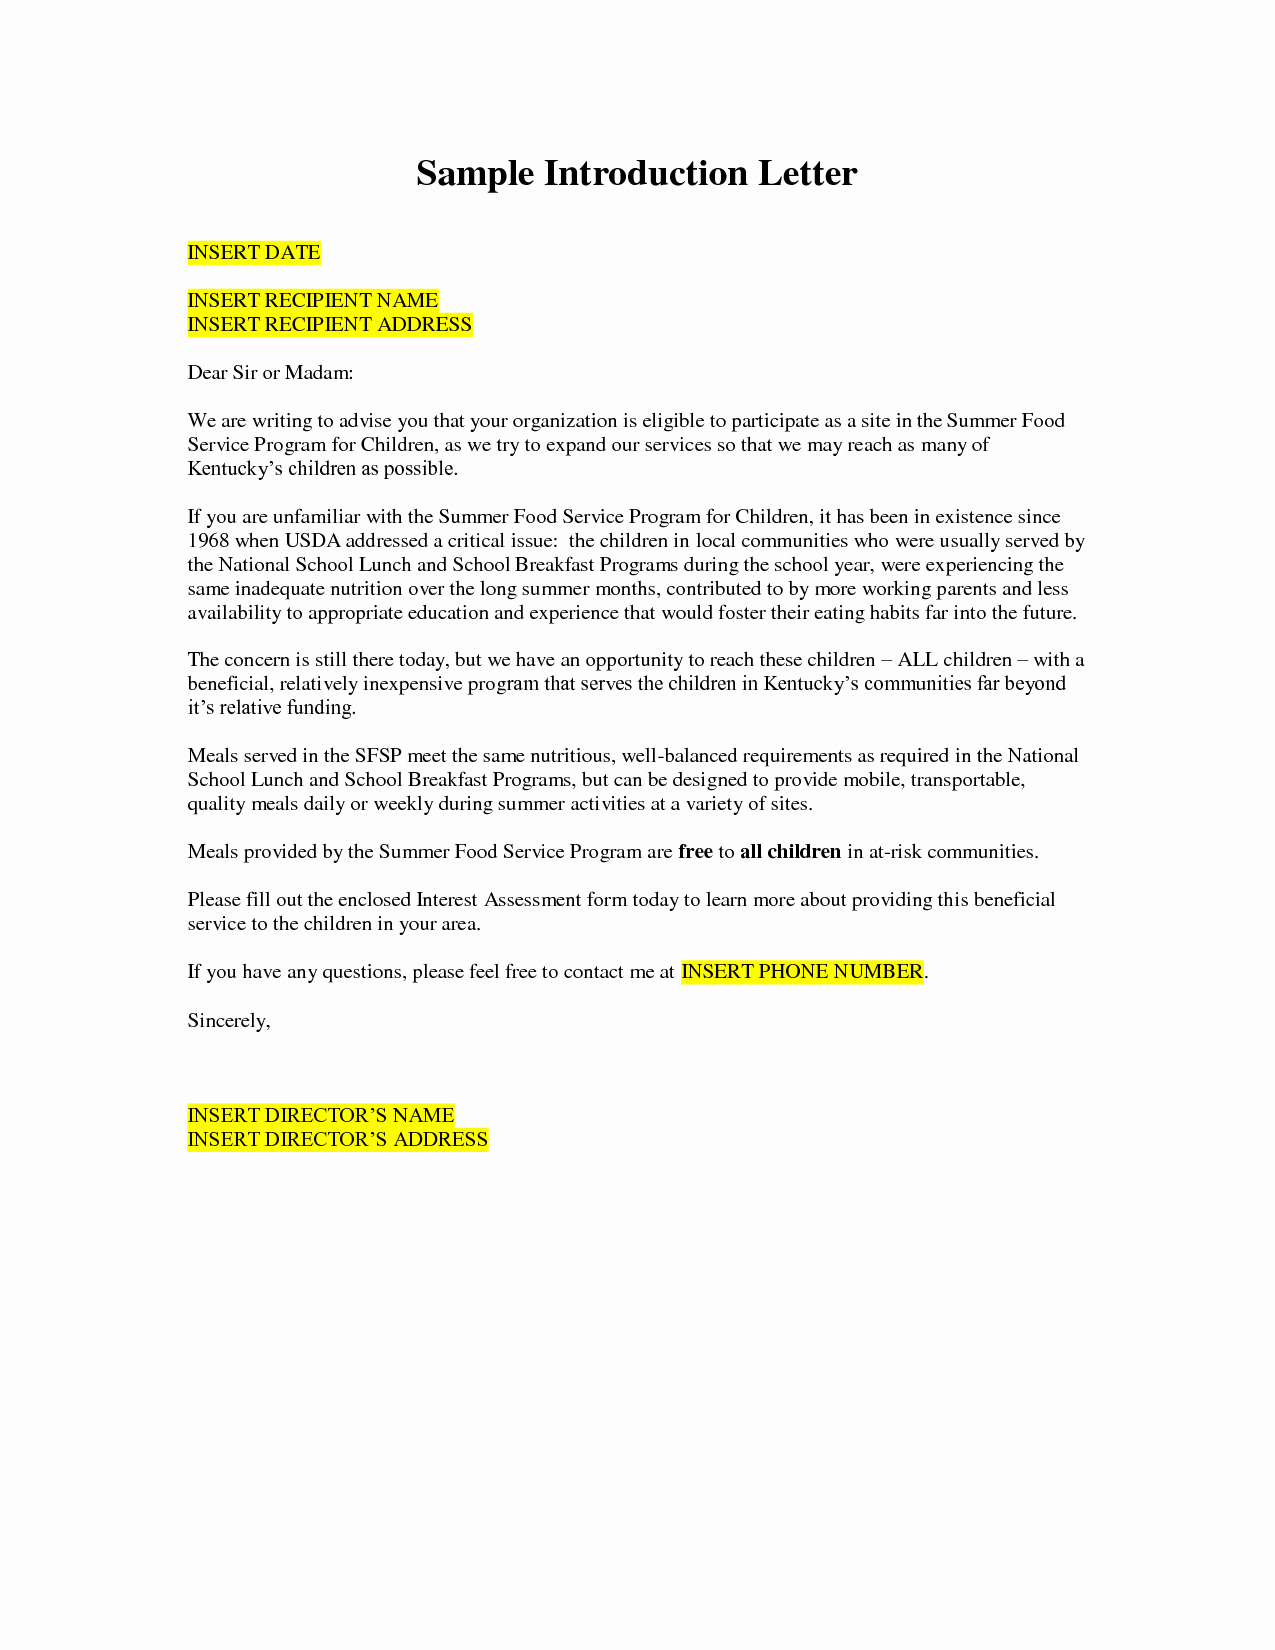 Free Business Letter Template Word Beautiful Business Introduction Letter Template